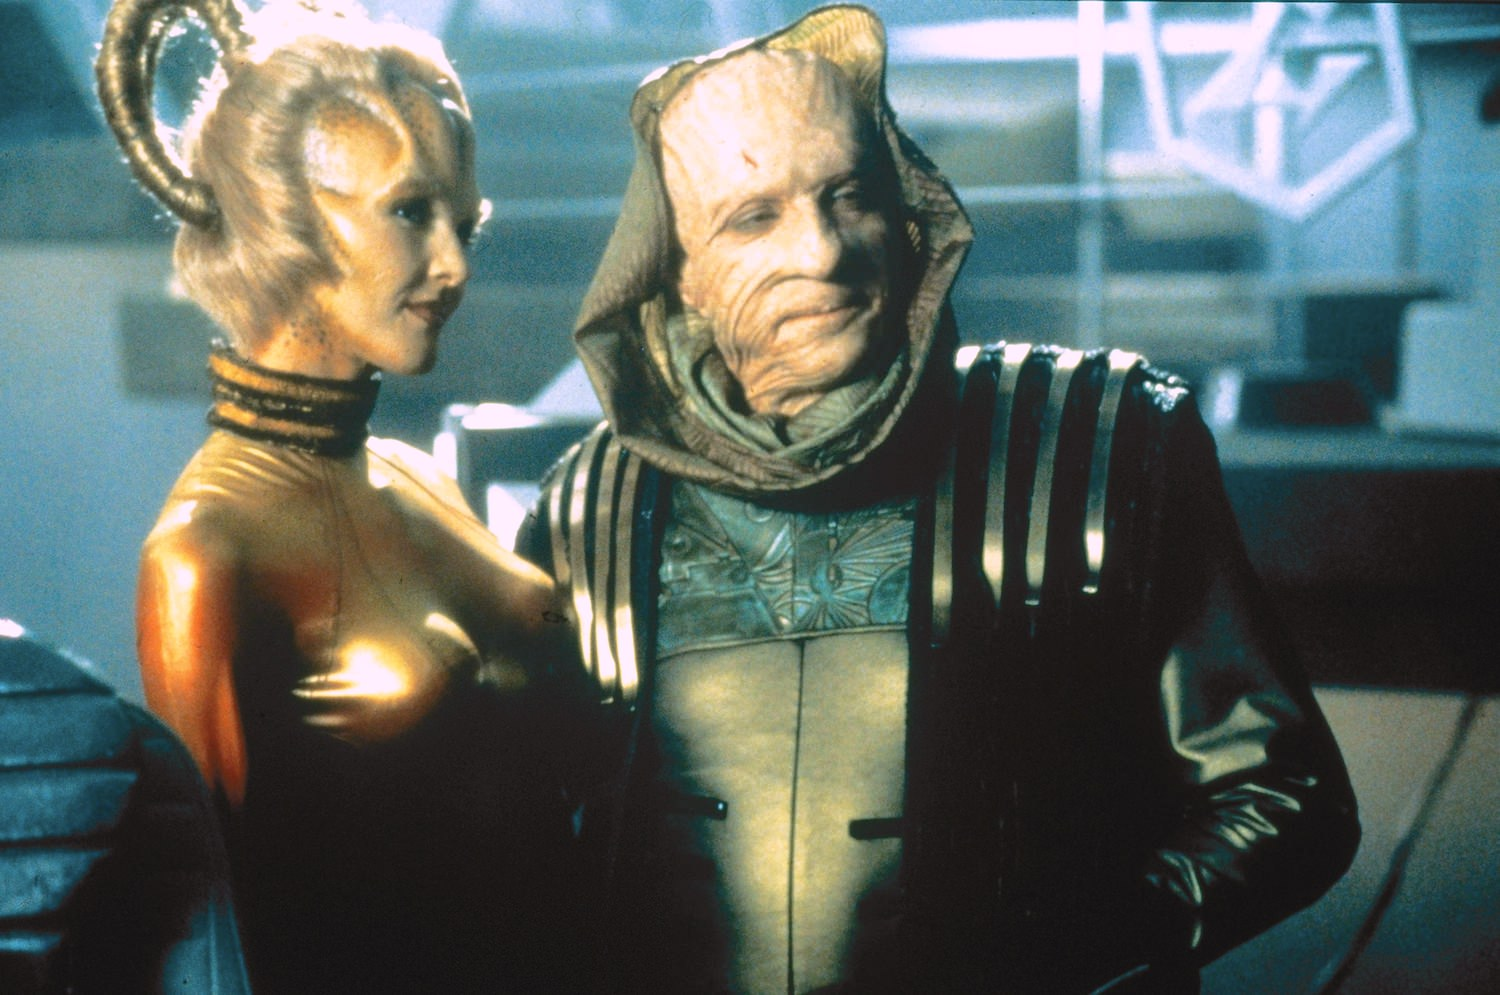 Star trek insurrection jonathan frakes murray abraham